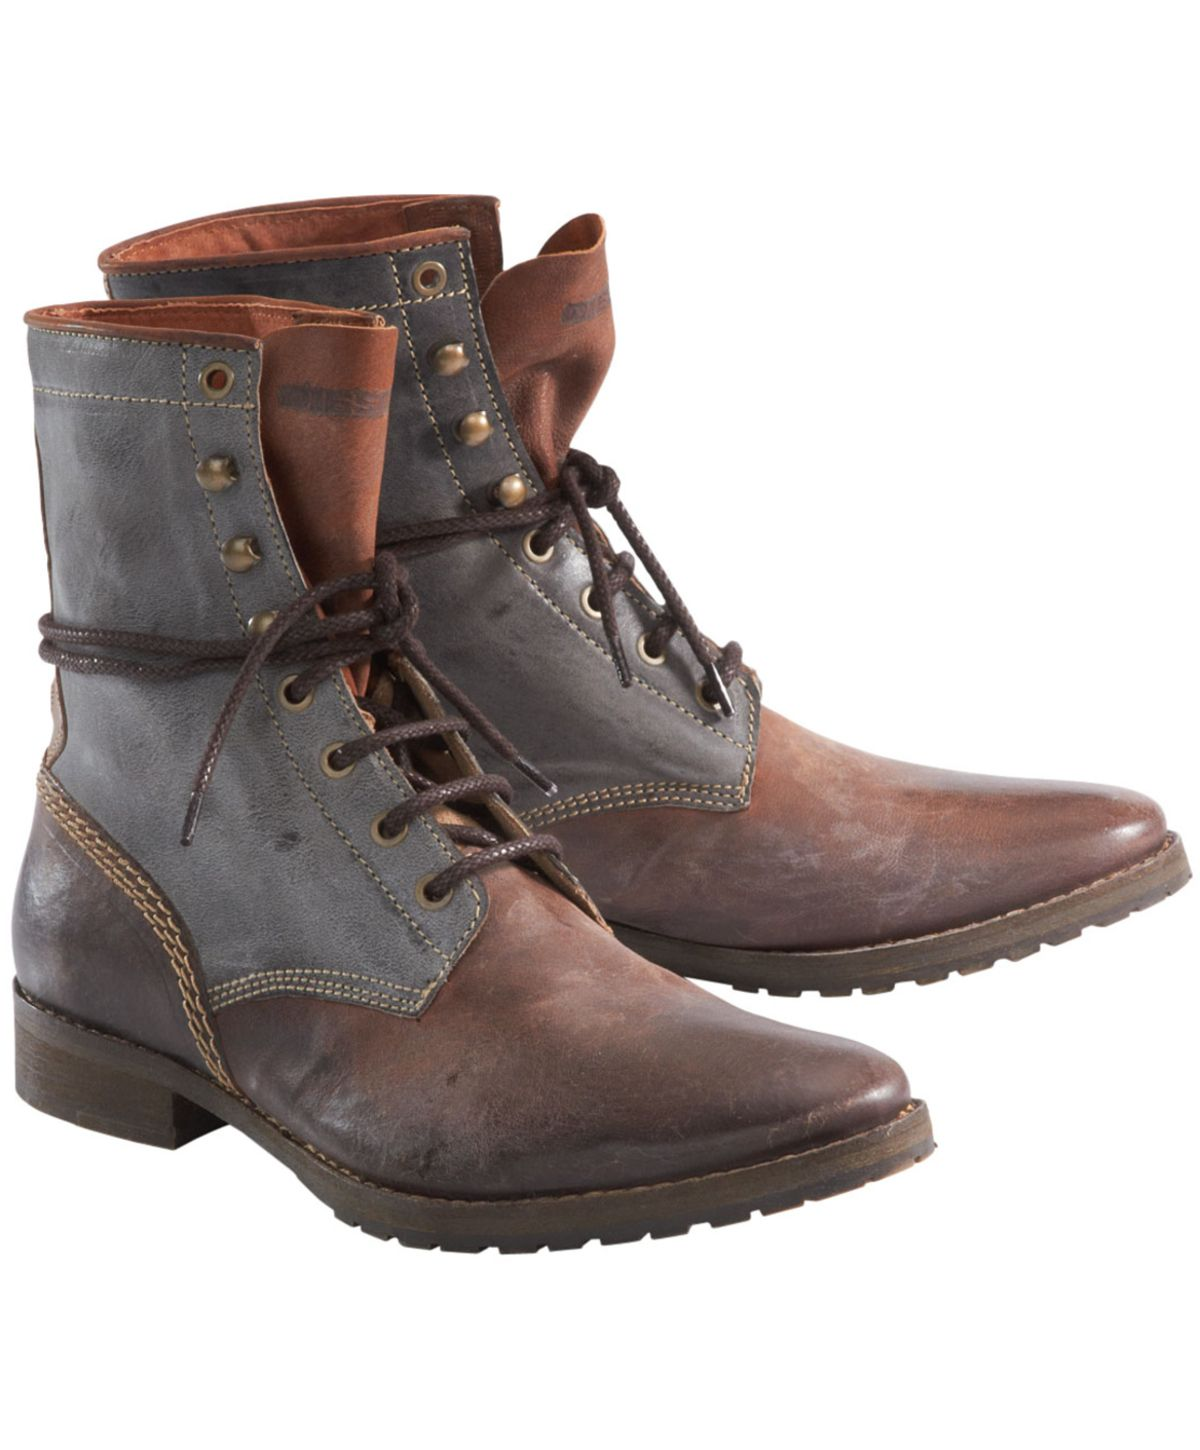 DIESEL Men's Leather Boots | Mens Shoes & Boots | Pinterest ...